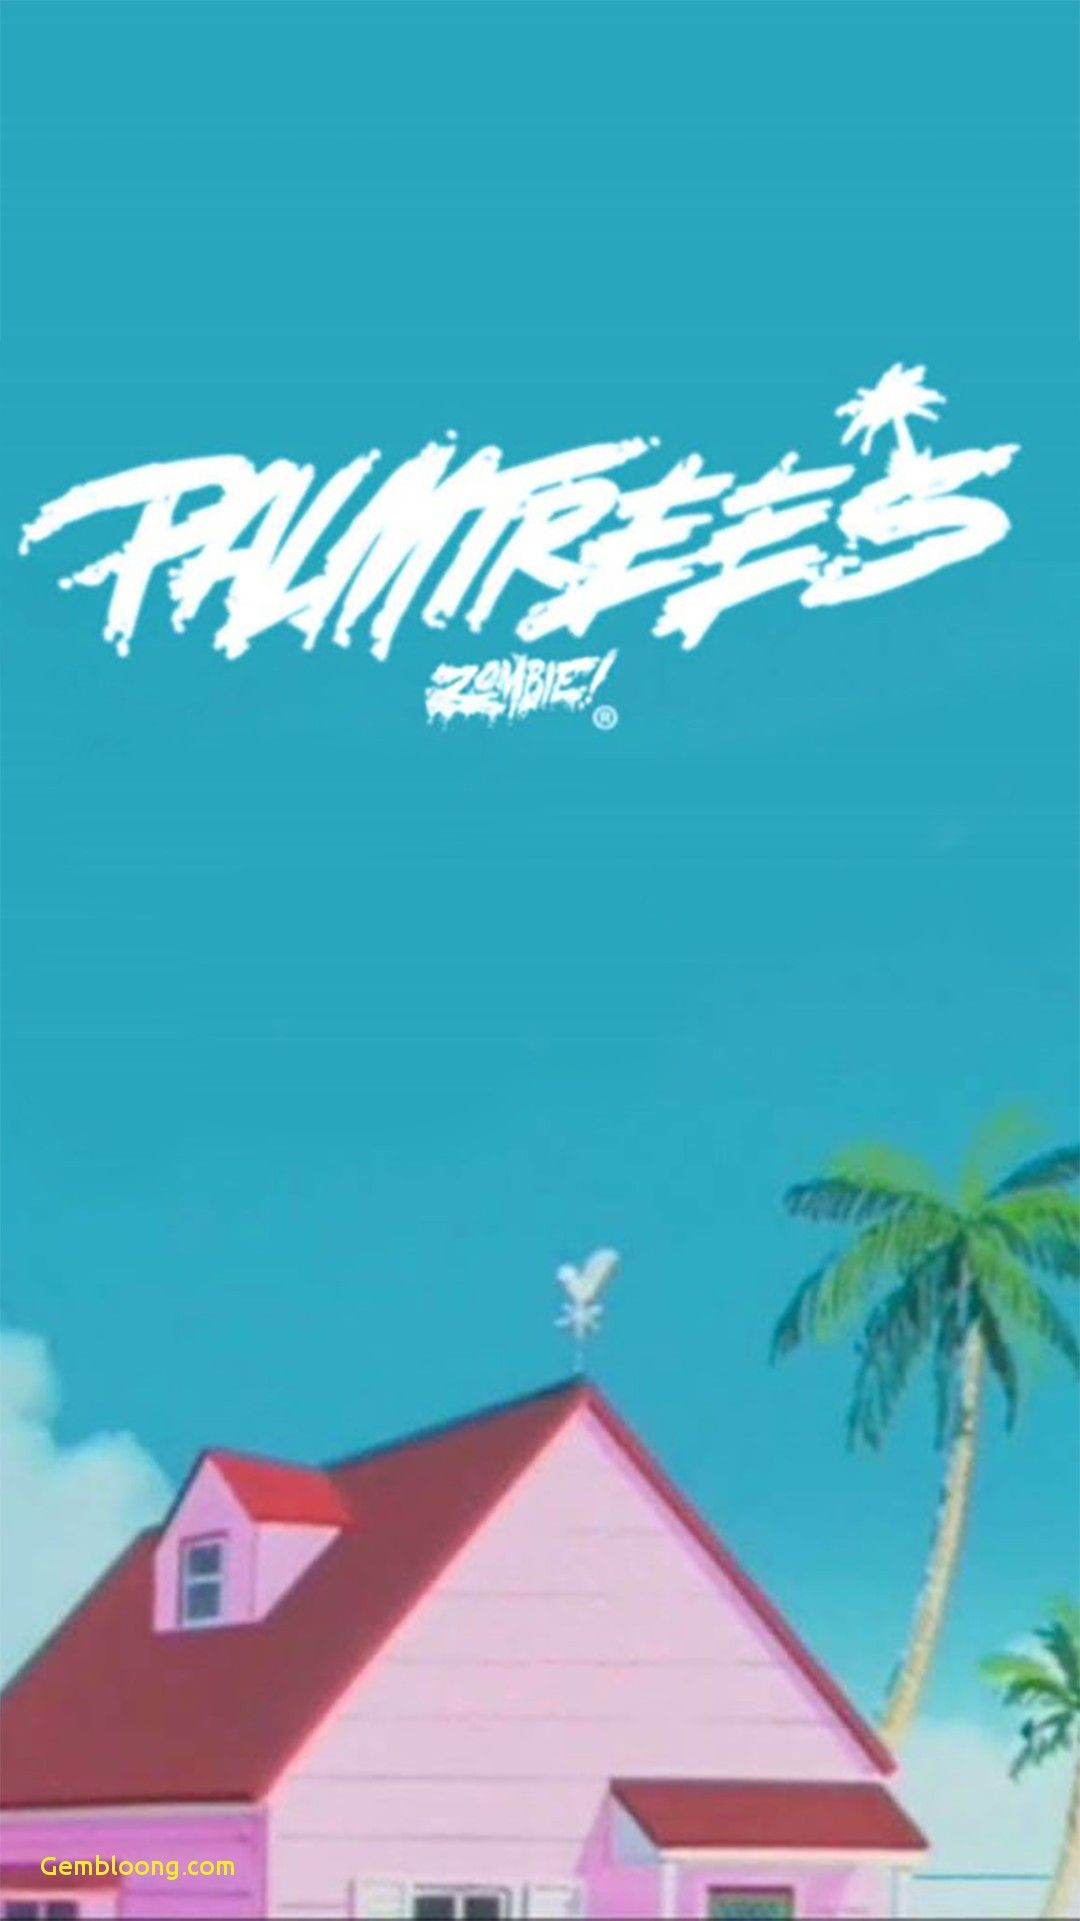 1080x1921 Wallpaper for iPhone Palm Trees Beautiful Flatbush Zombies Phone ...